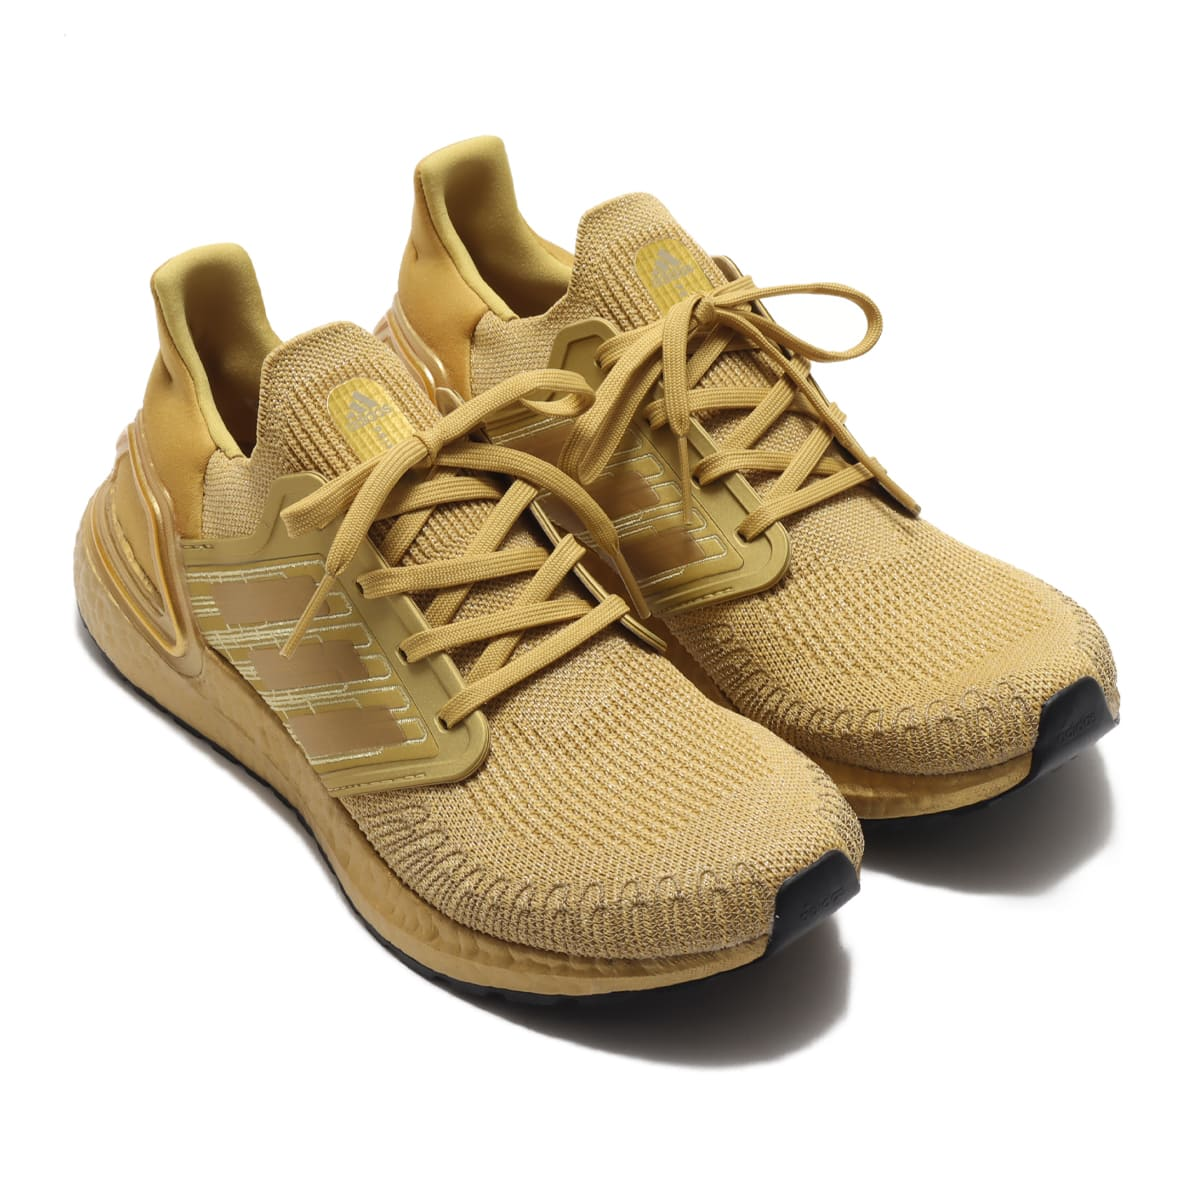 adidas ULTRABOOST 20 GOLD METARIC/GOLD METARIC/GOLD METARIC 20SS-I_photo_large